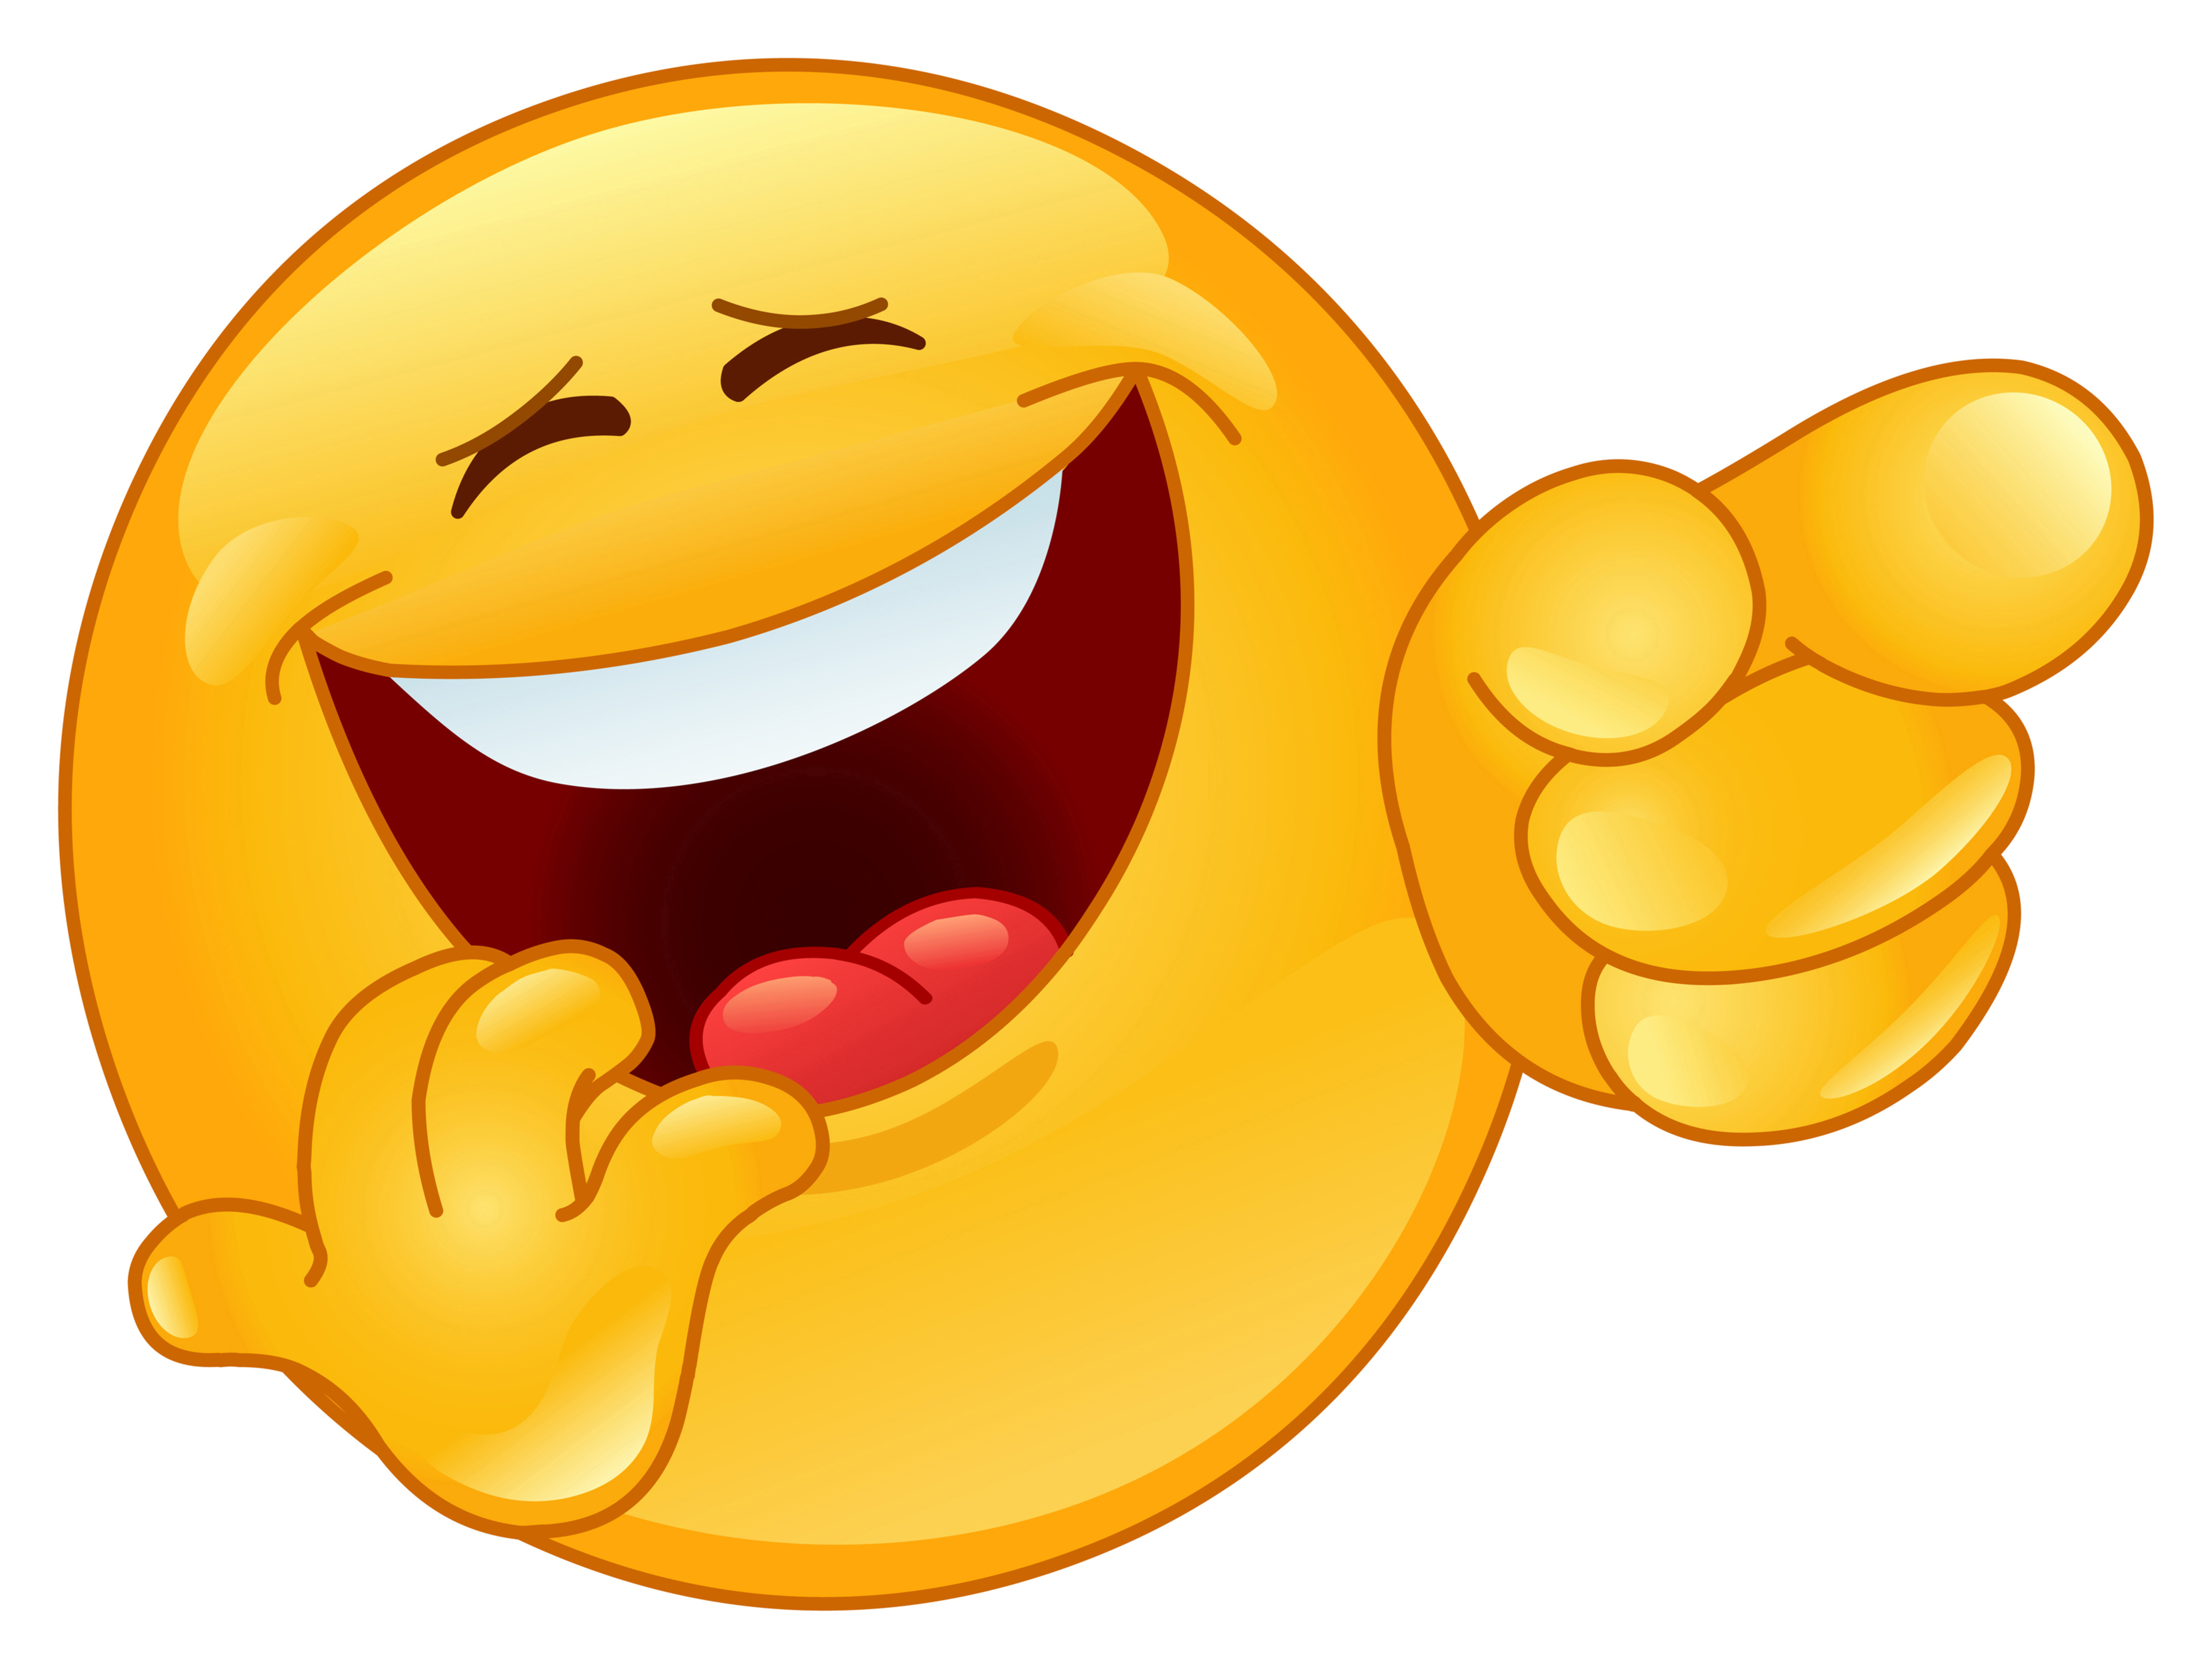 images of laughing smiley faces cartoon spacehero rh superstarfloraluk com cartoon laughing face pictures cartoon laughing smiley face